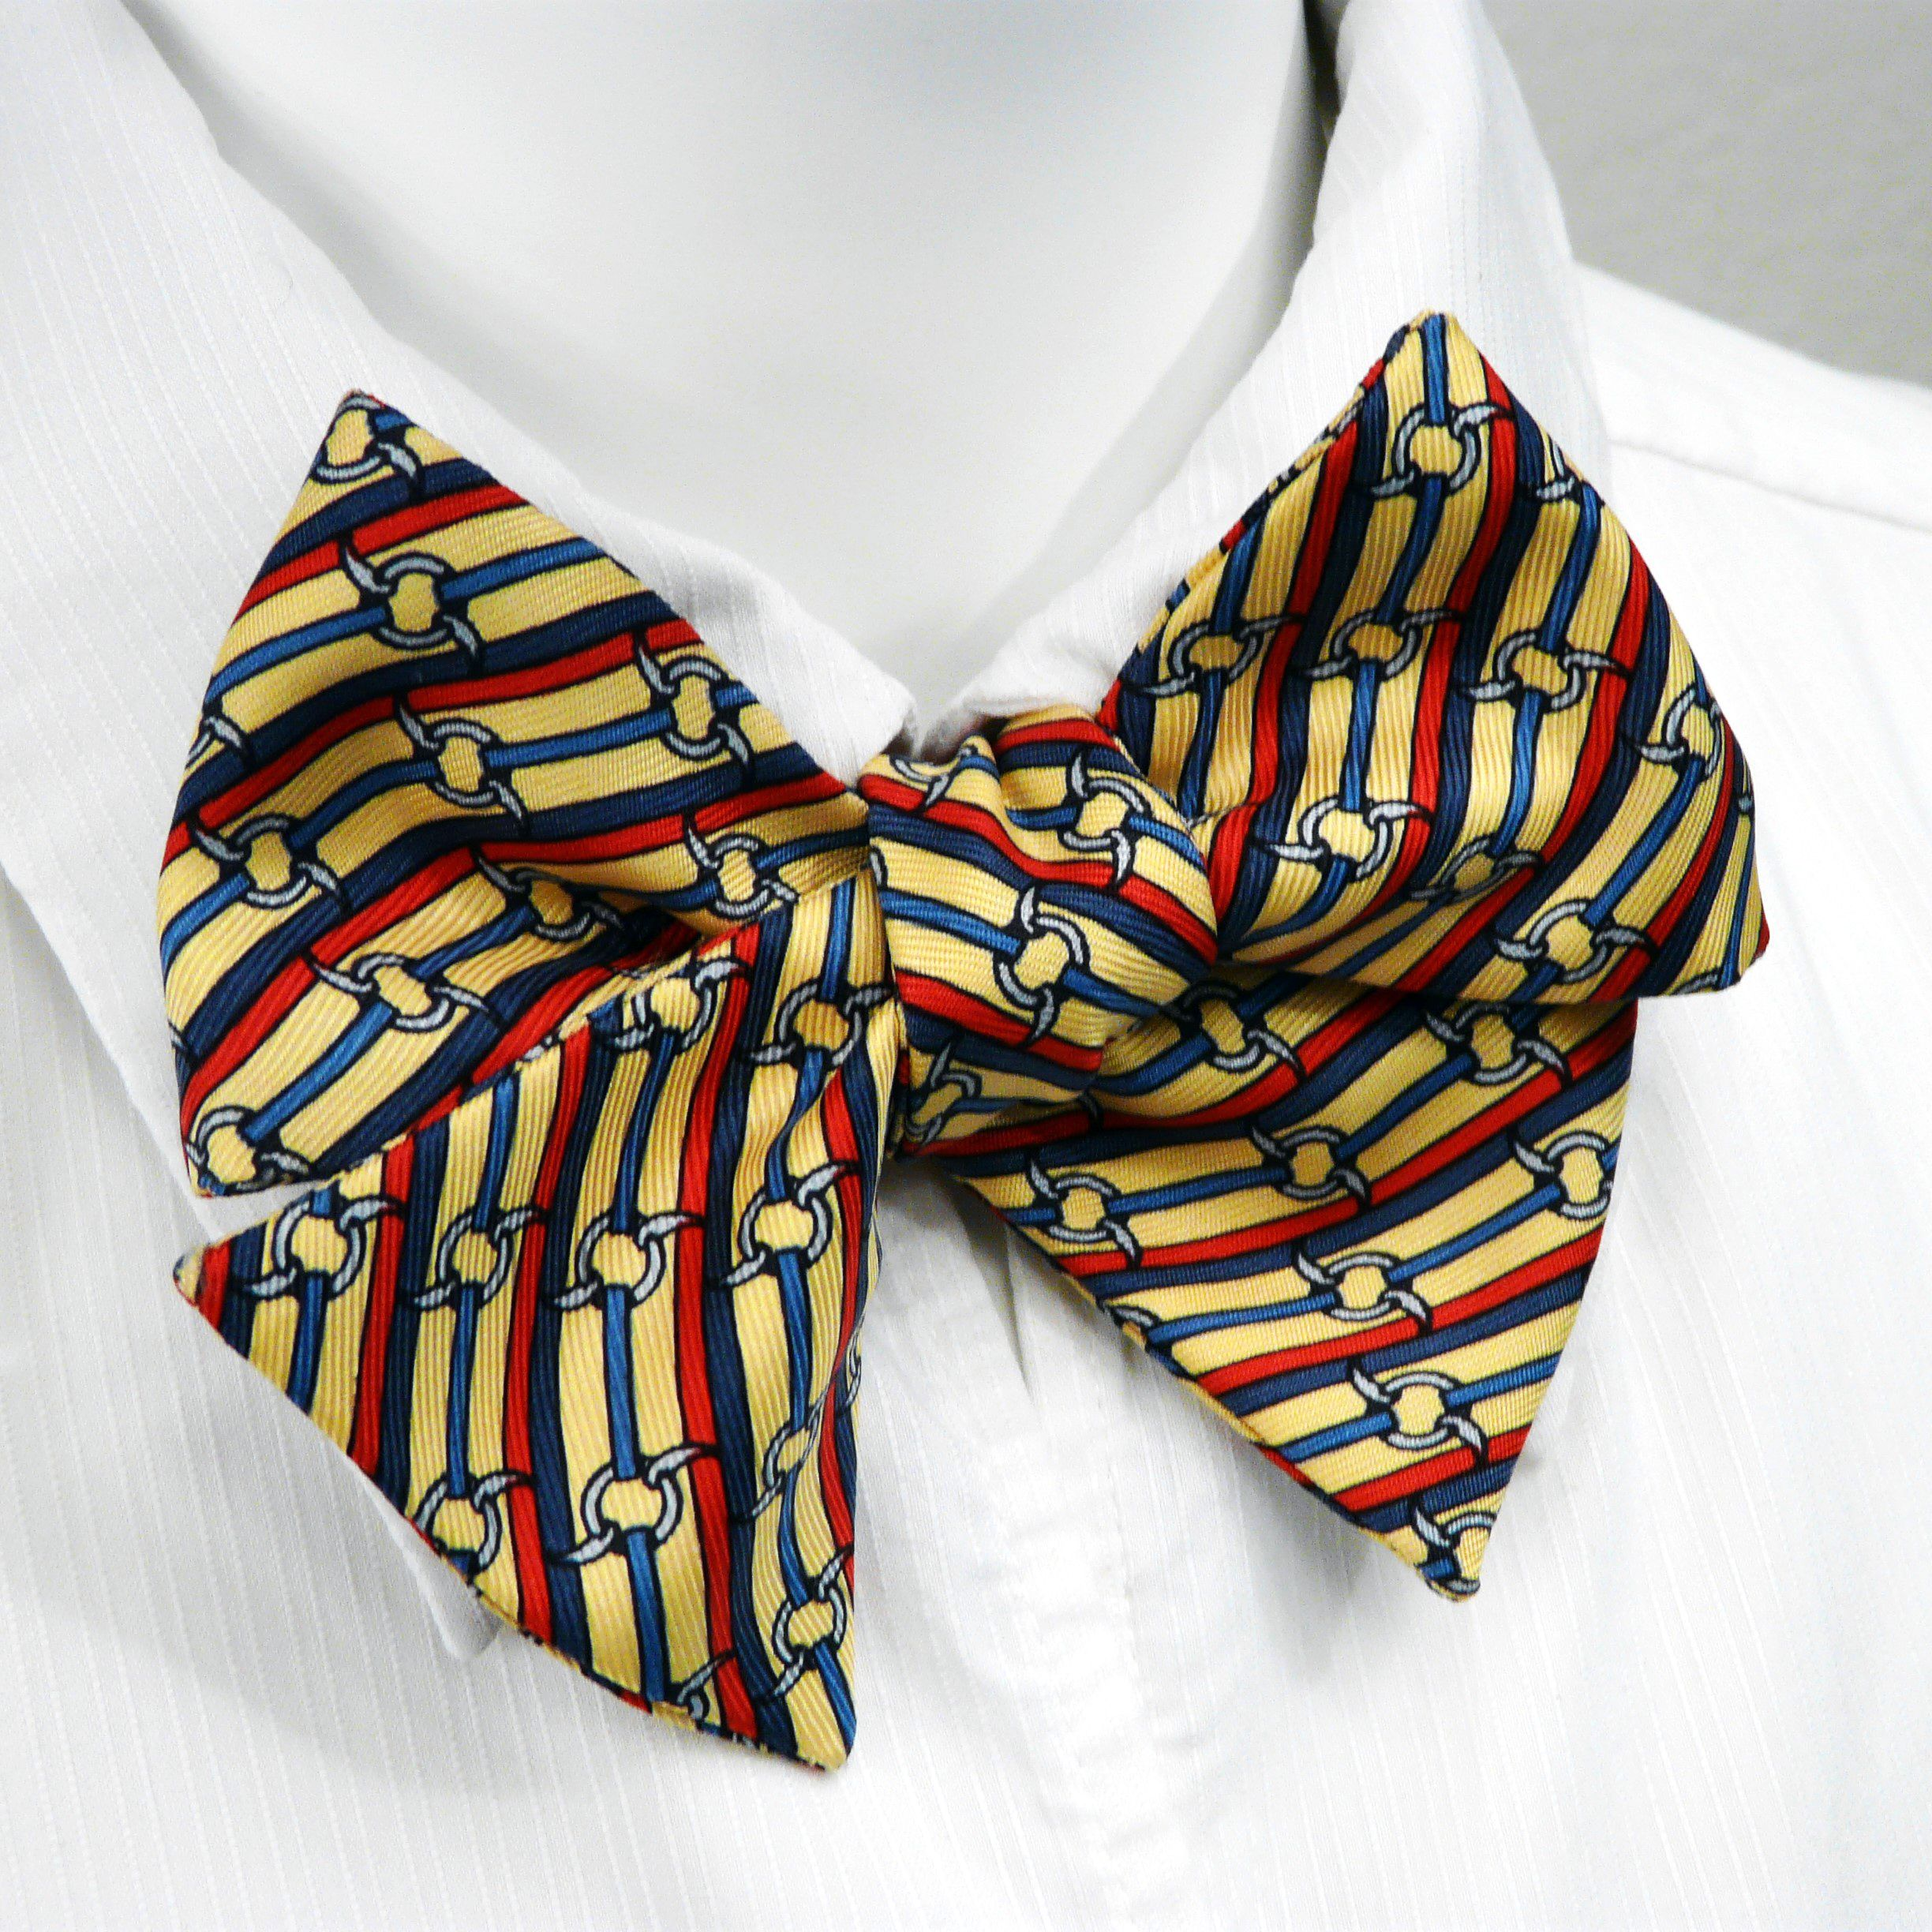 Hermes adjustable Bowtie